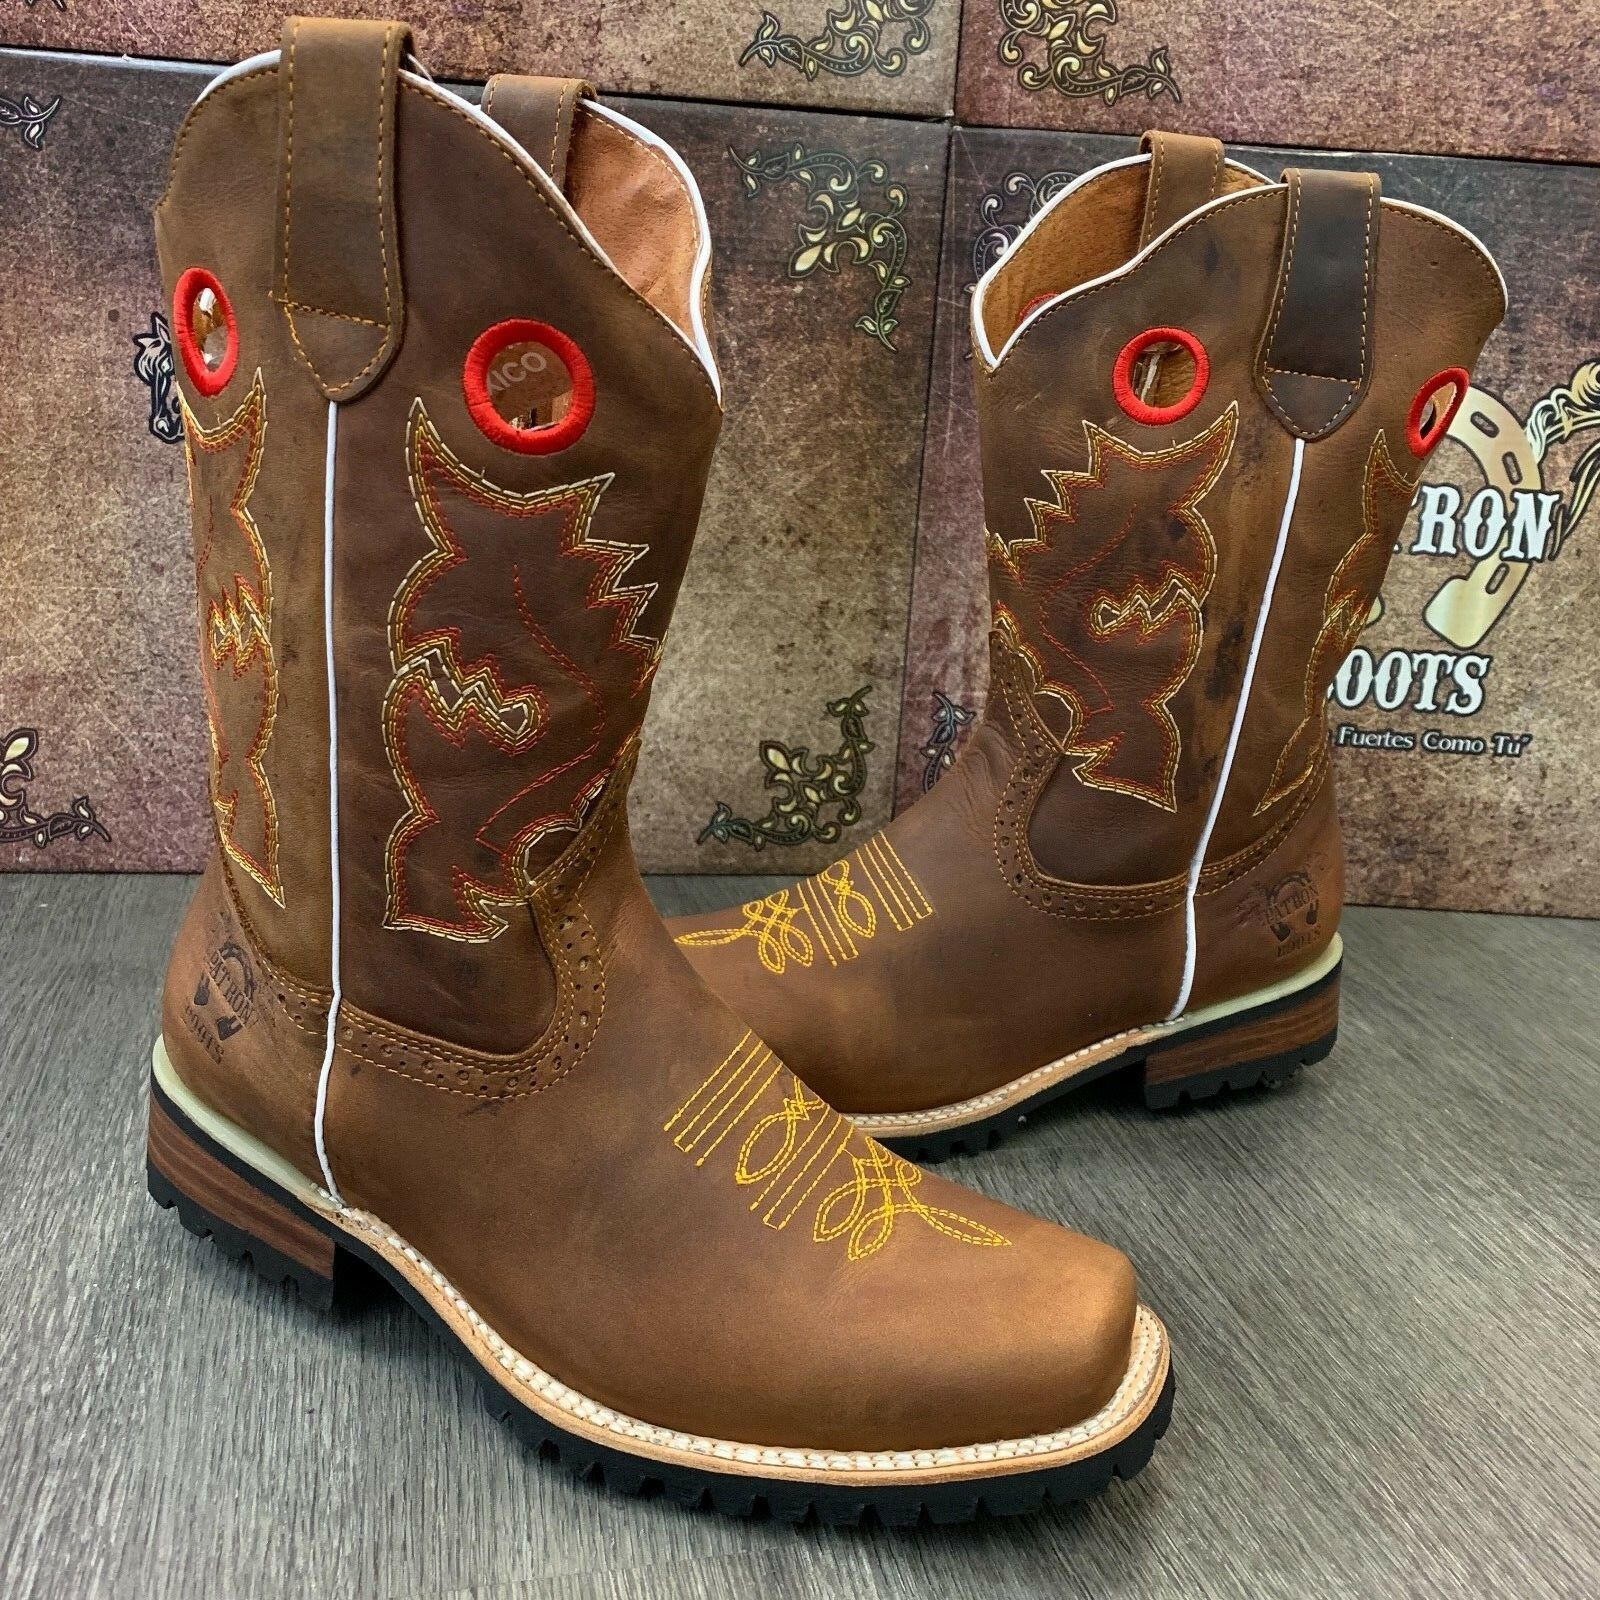 MEN'S BROWN BOOTS WESTERN COWBOY SQUARE TOE CRAZY LEATHER TRACTOR SOLE 1